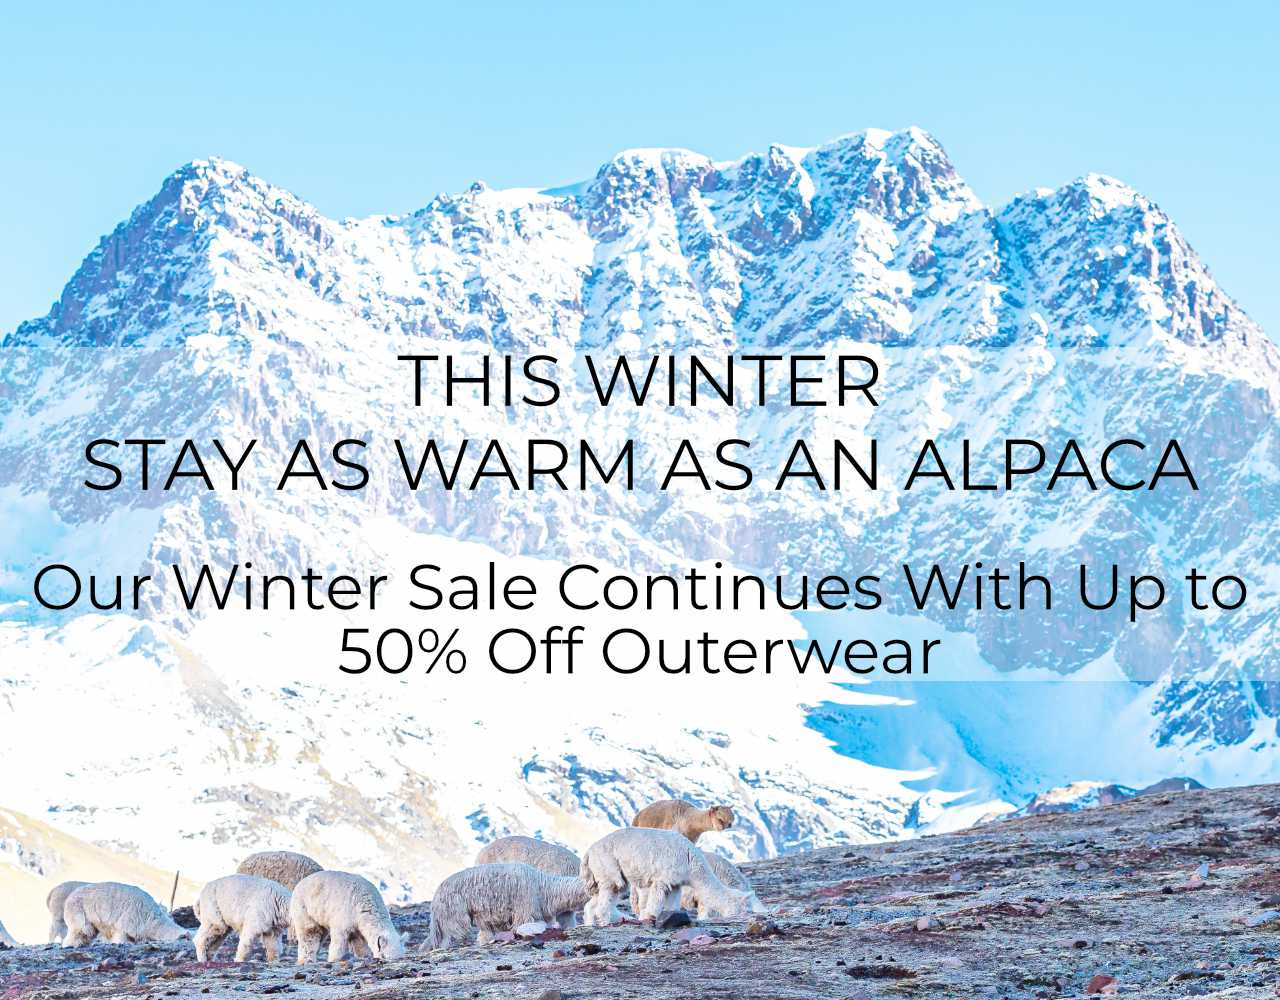 WINTER SALE UP TO 50% OFF ALPACA OUTERWEAR AND ALPACA KNITWEAR